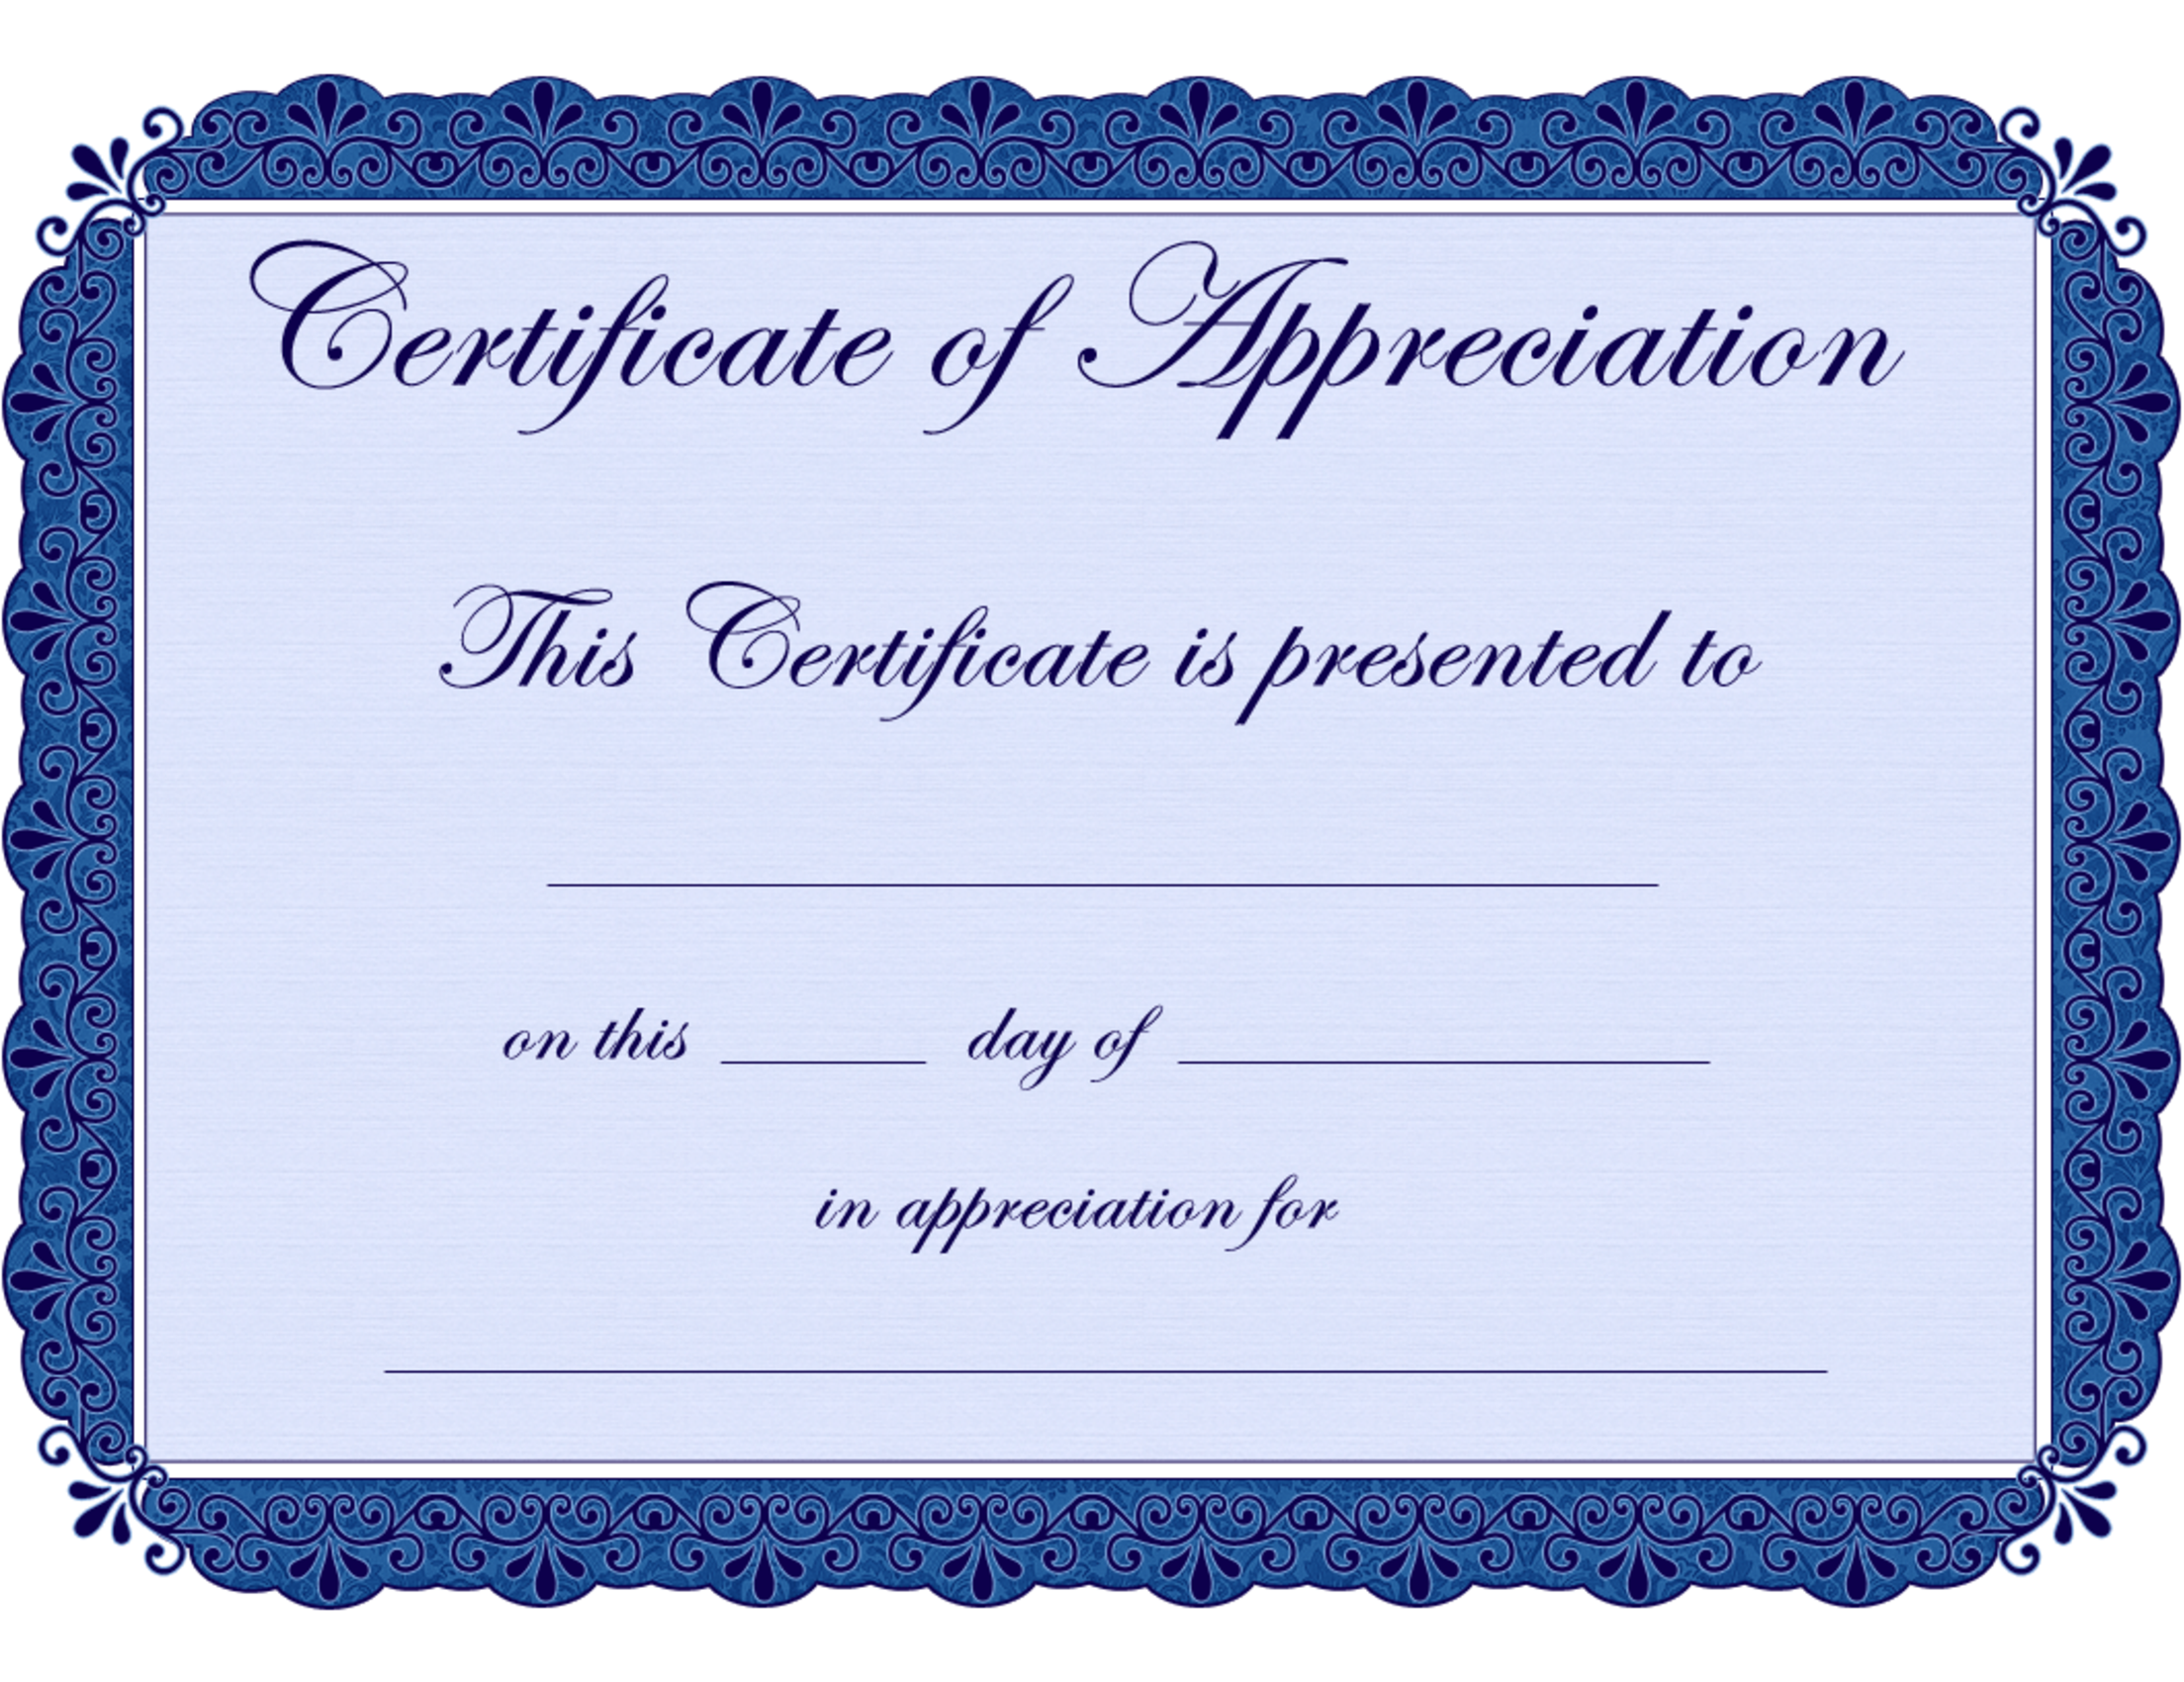 Free printable certificates certificate of appreciation certificate free printable certificates certificate of appreciation certificate yadclub